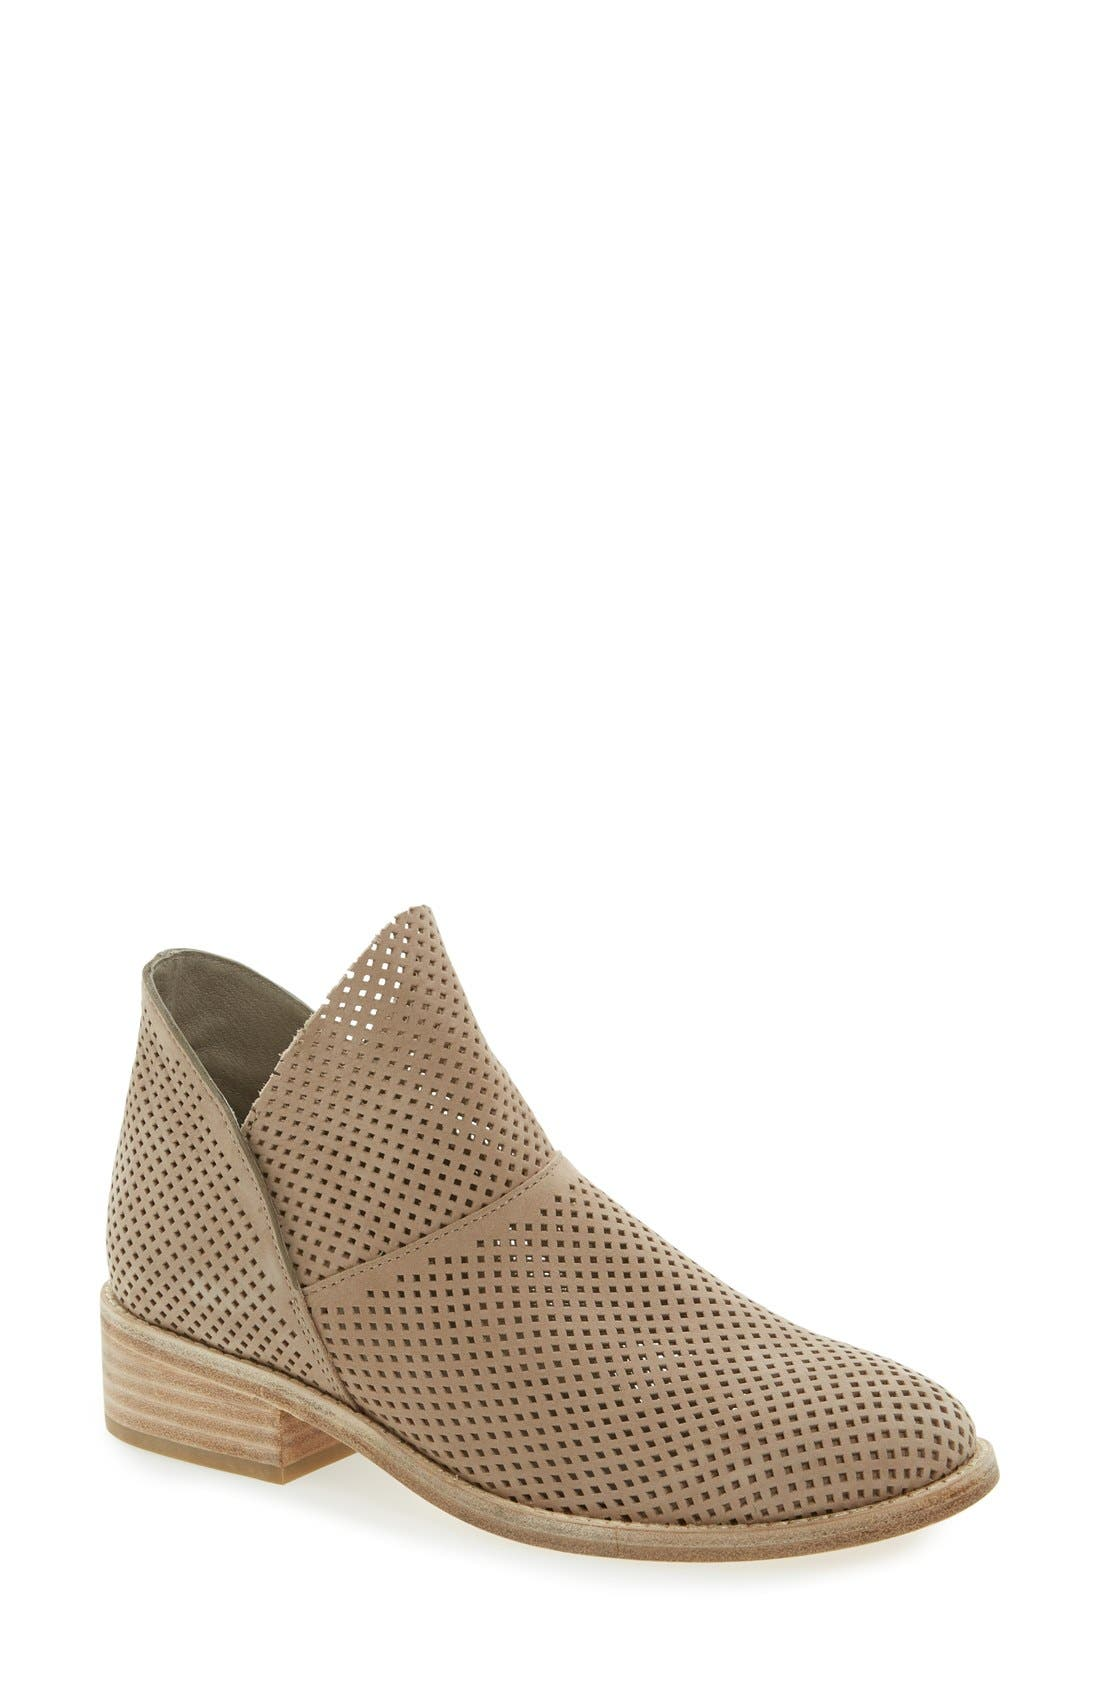 EILEEN FISHER 'Leaf' Bootie